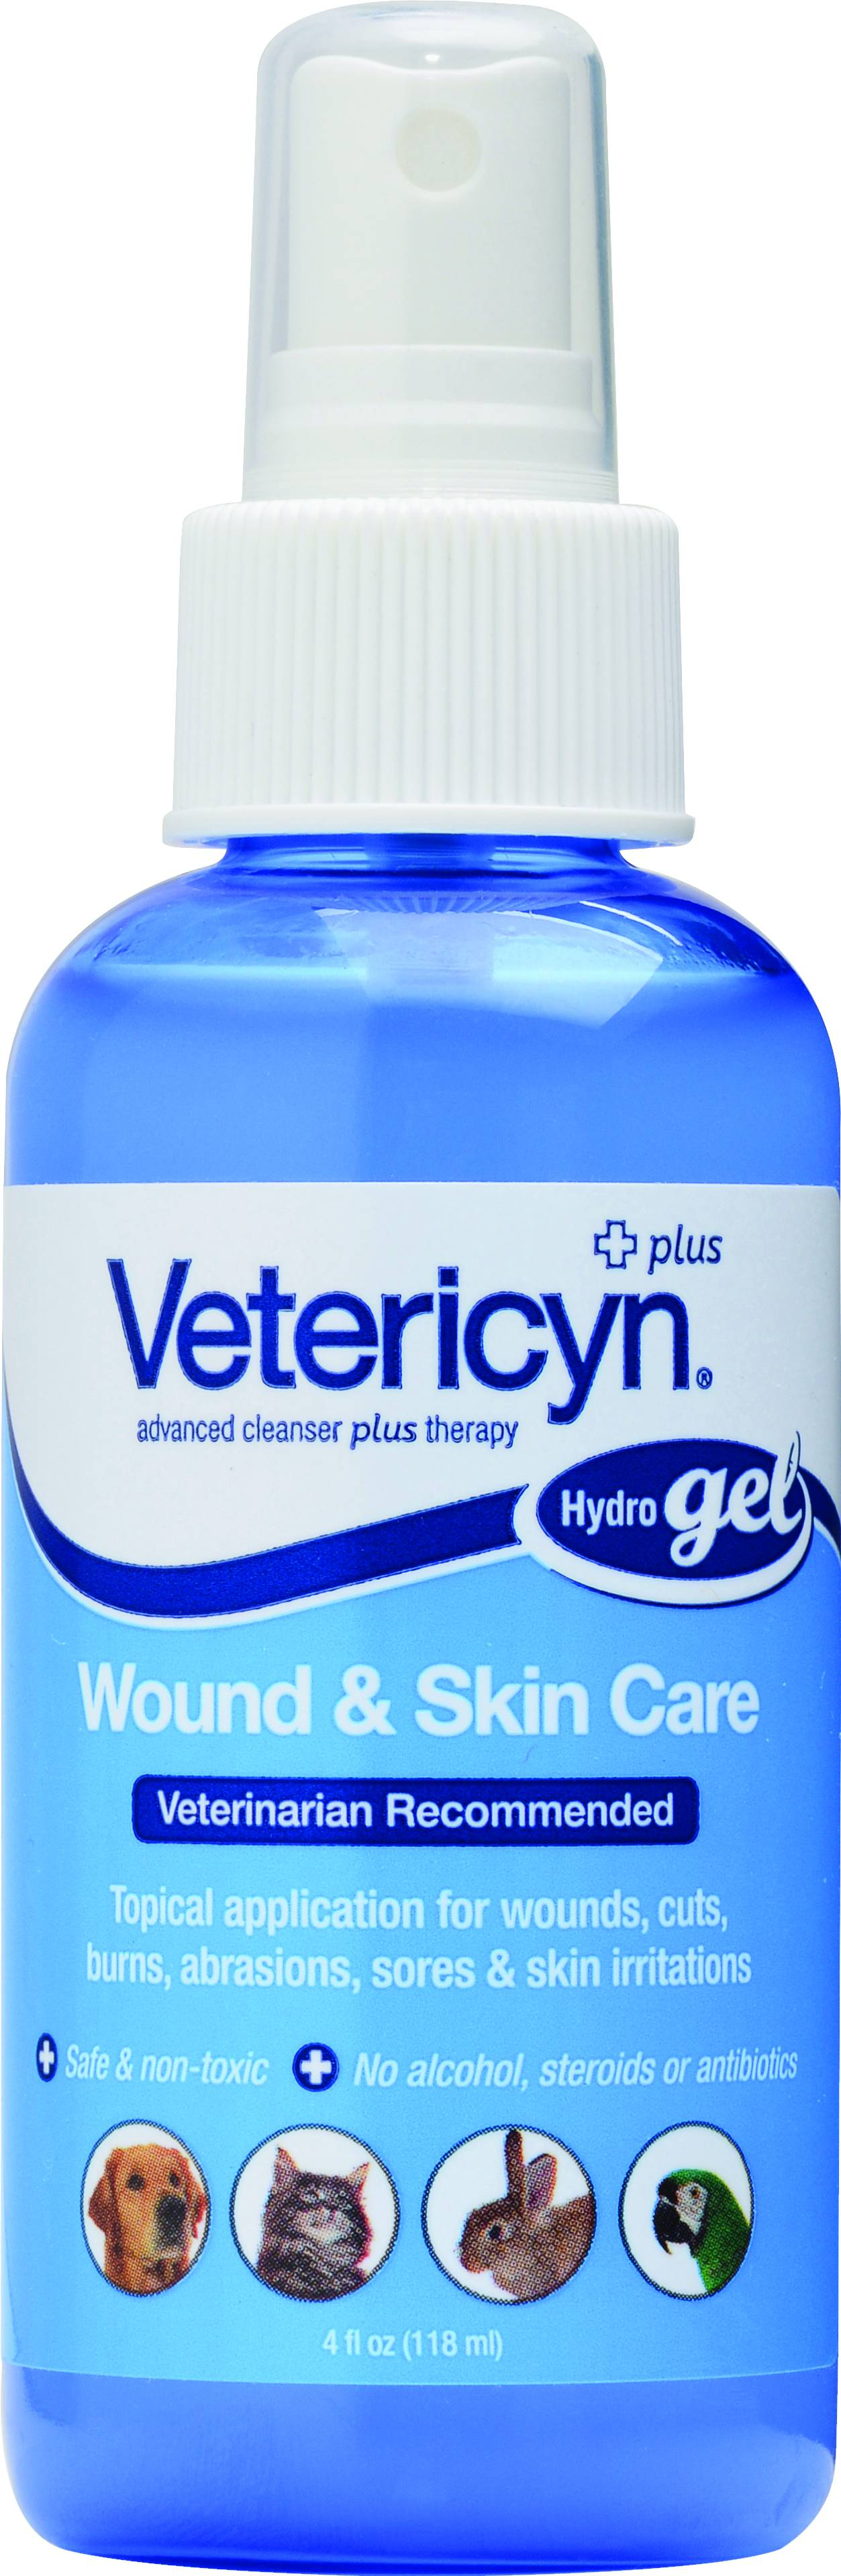 Vetericyn Hydrogel Spray